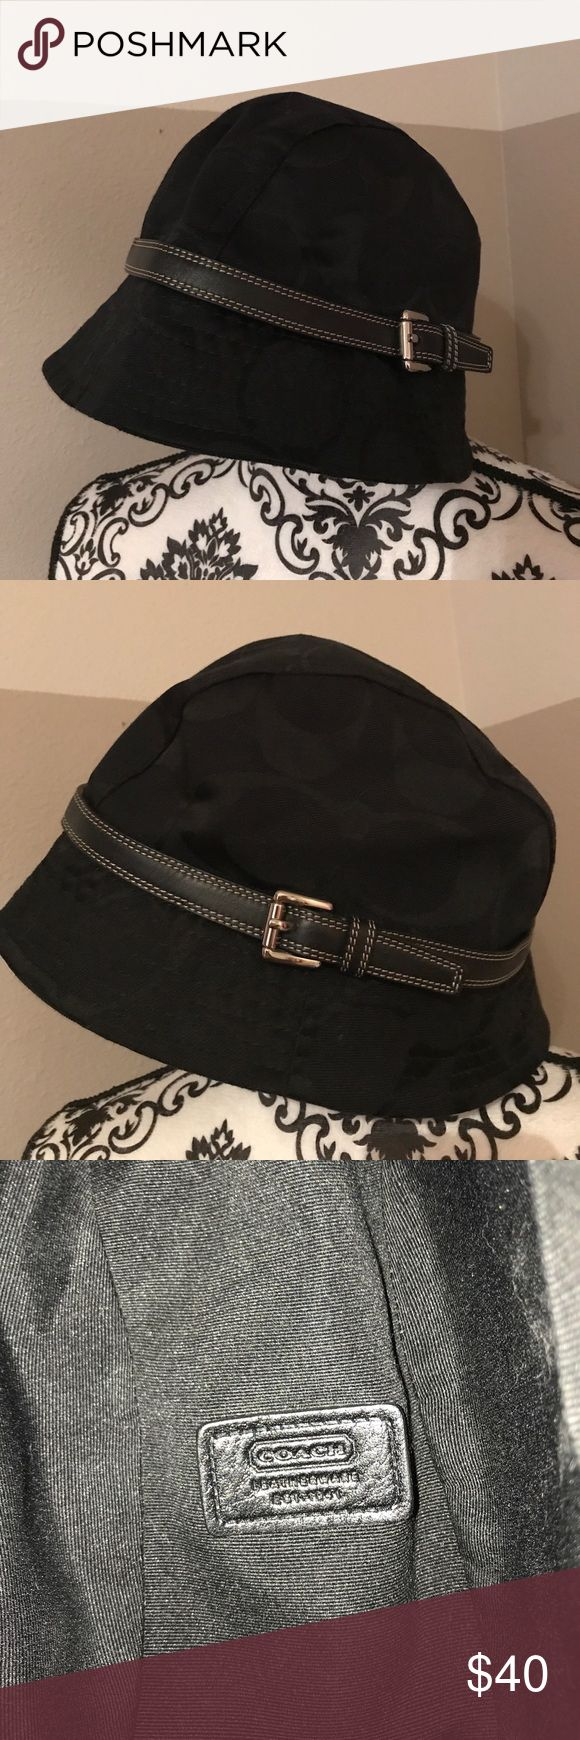 Coach Hat Bucket-style Coach Hat in signature-print black fabric. Authentic. Purchased directly from Coach. Coach Accessories Hats